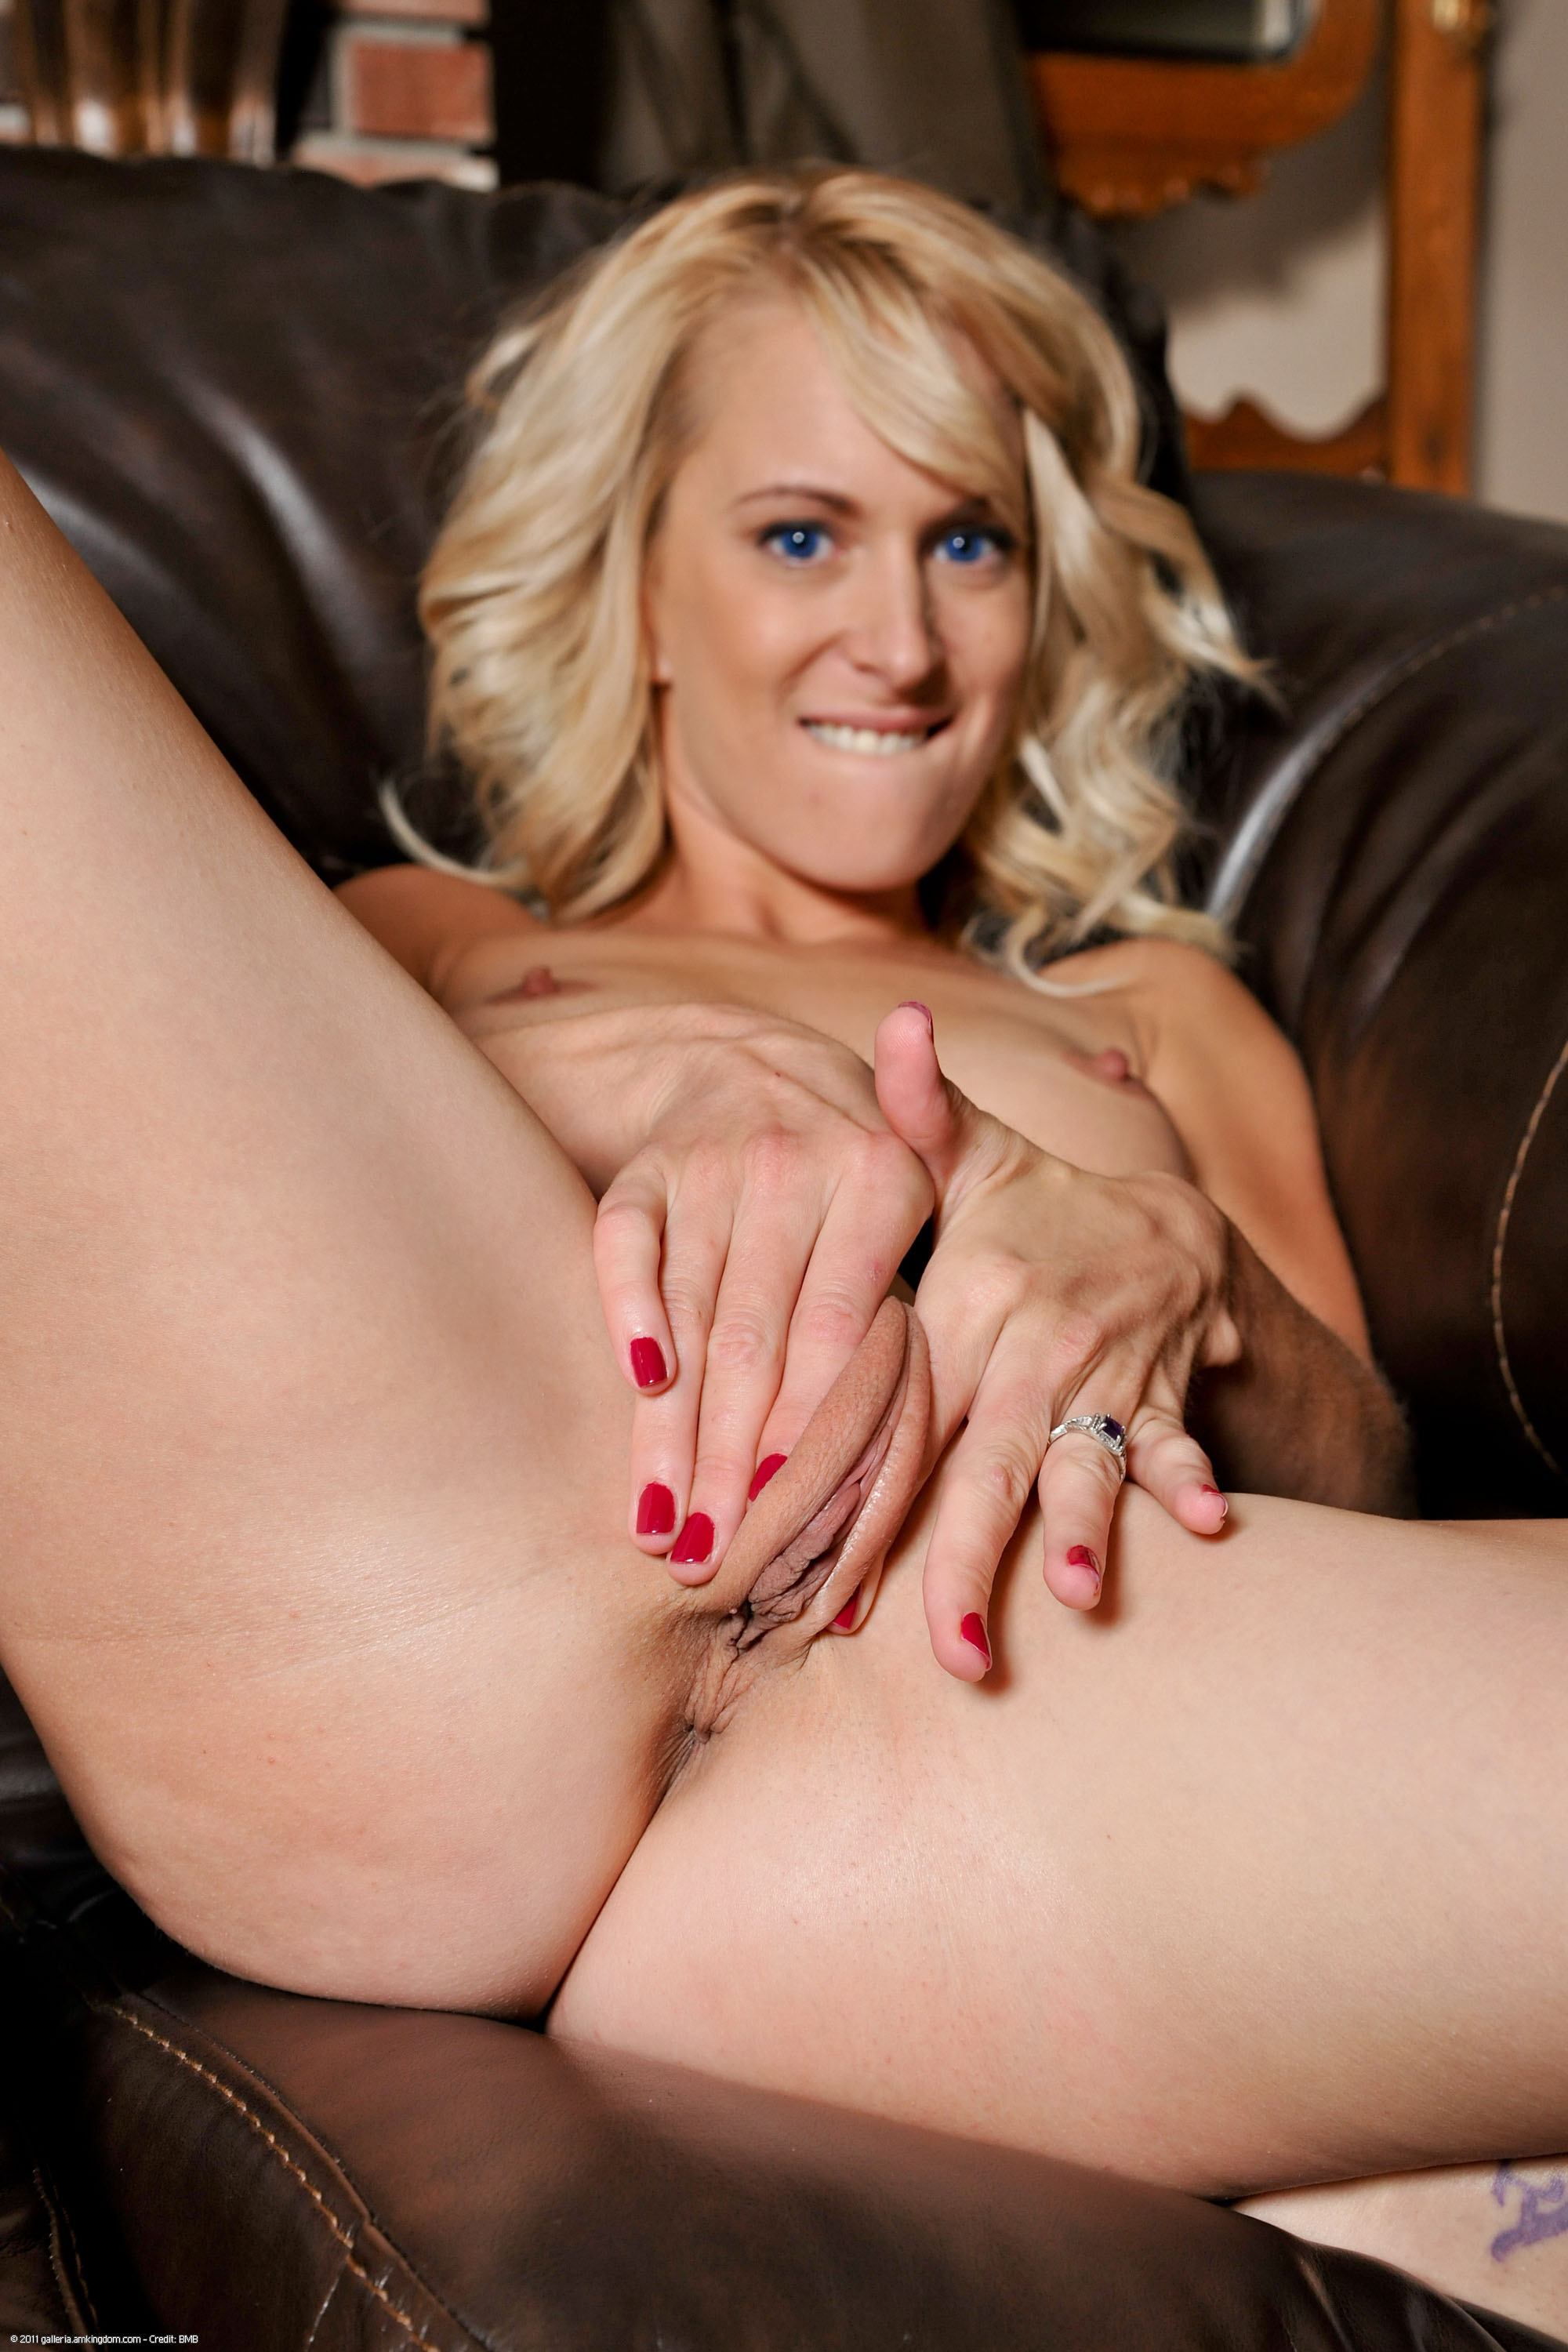 erinmoore nude Download a zipfile of this photoset